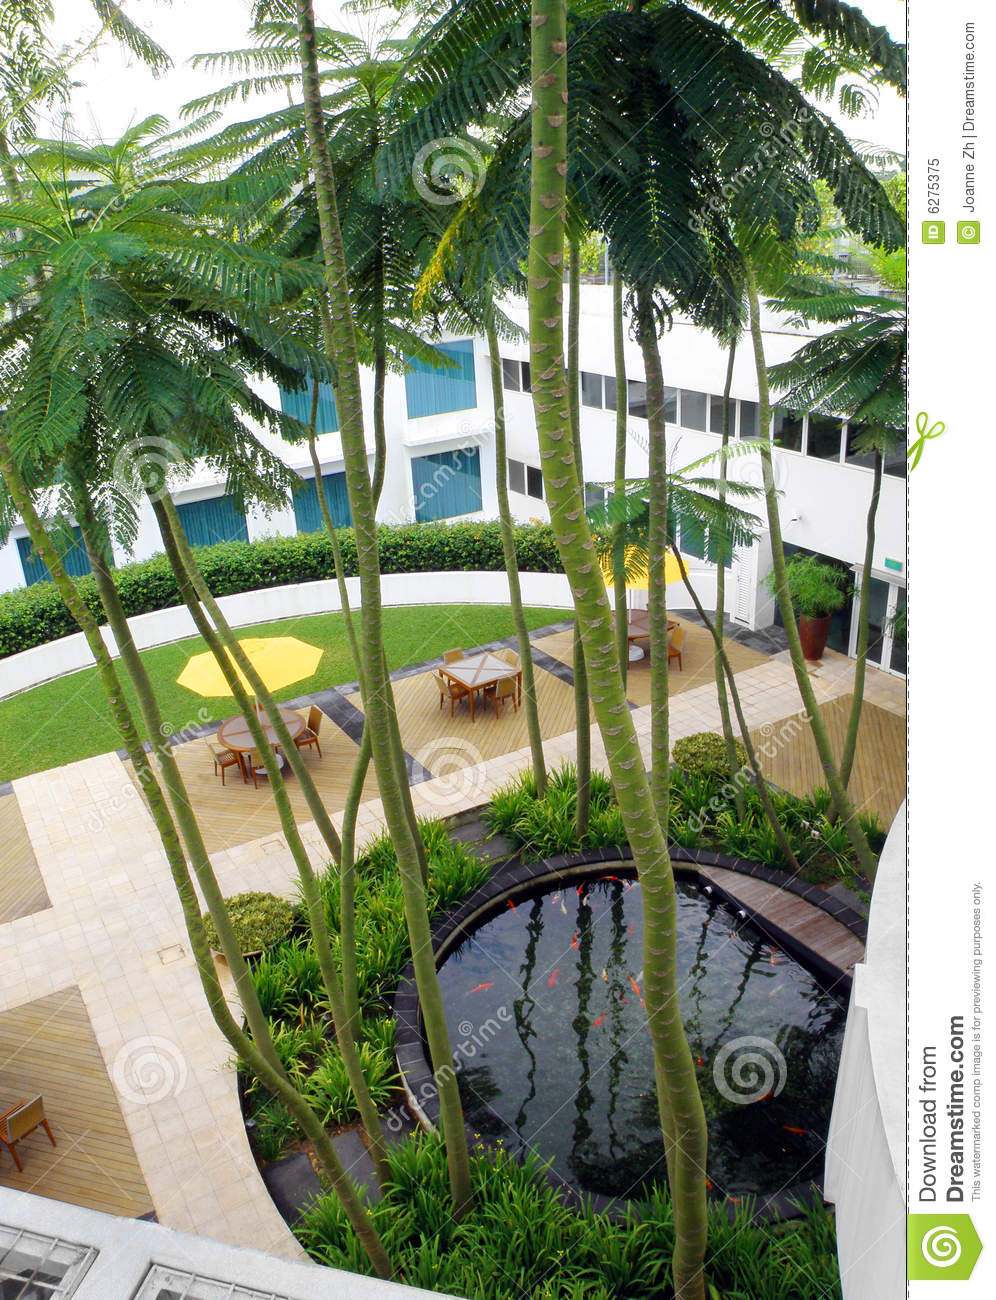 Roof Top Garden Design Royalty Free Stock Photo - Image ...